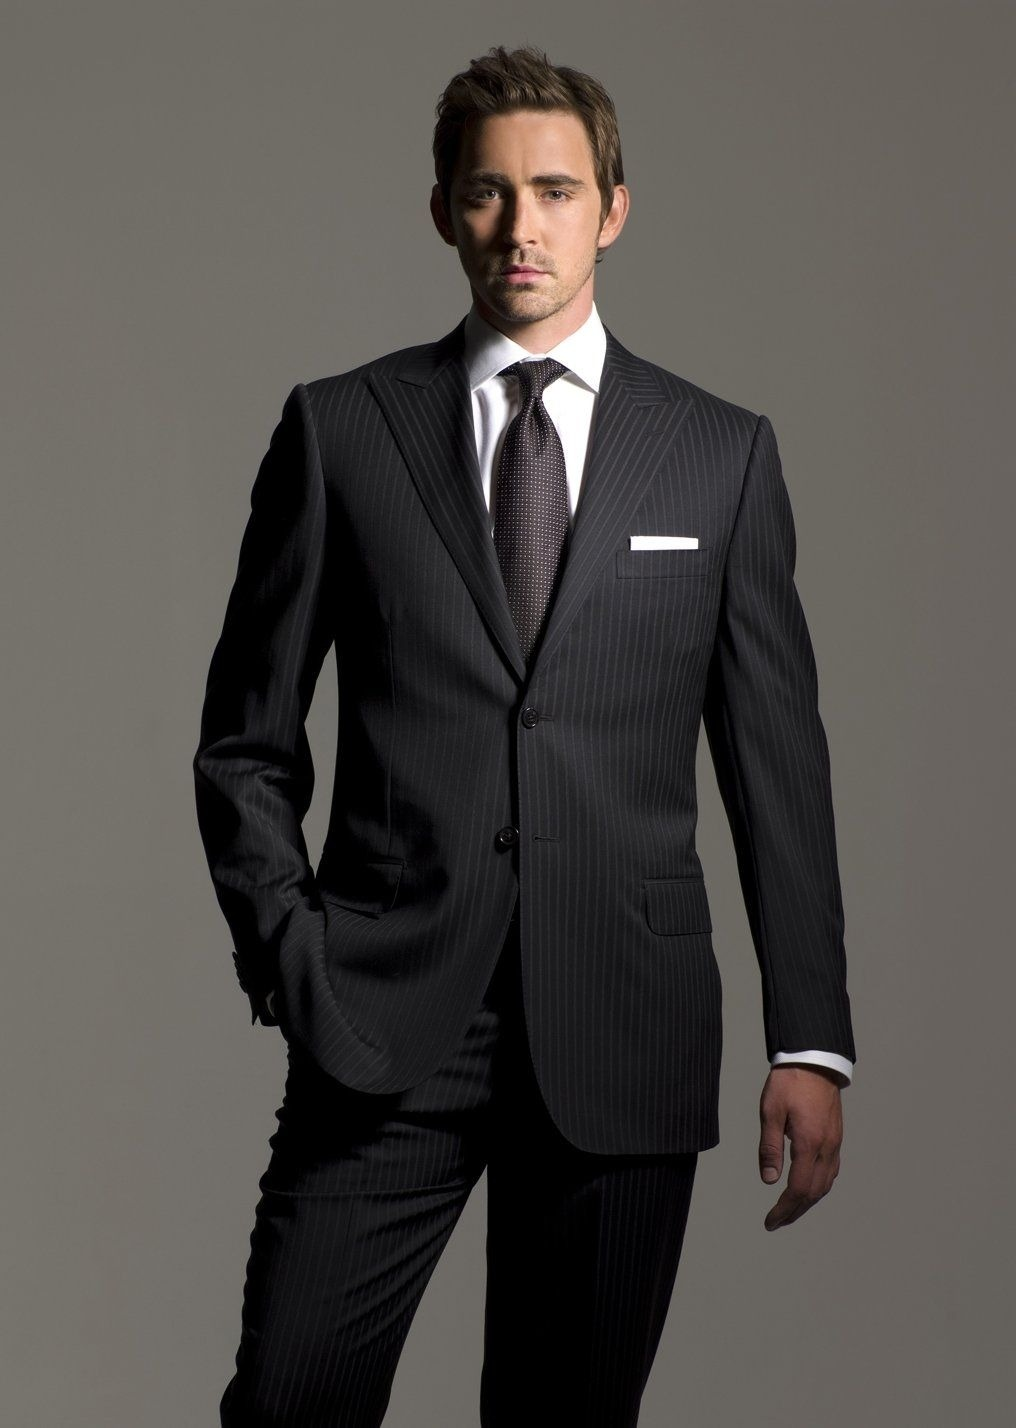 Lee Pace The Fall Wallpaper Lee Pace Photoshoot Of Lee Pace 02